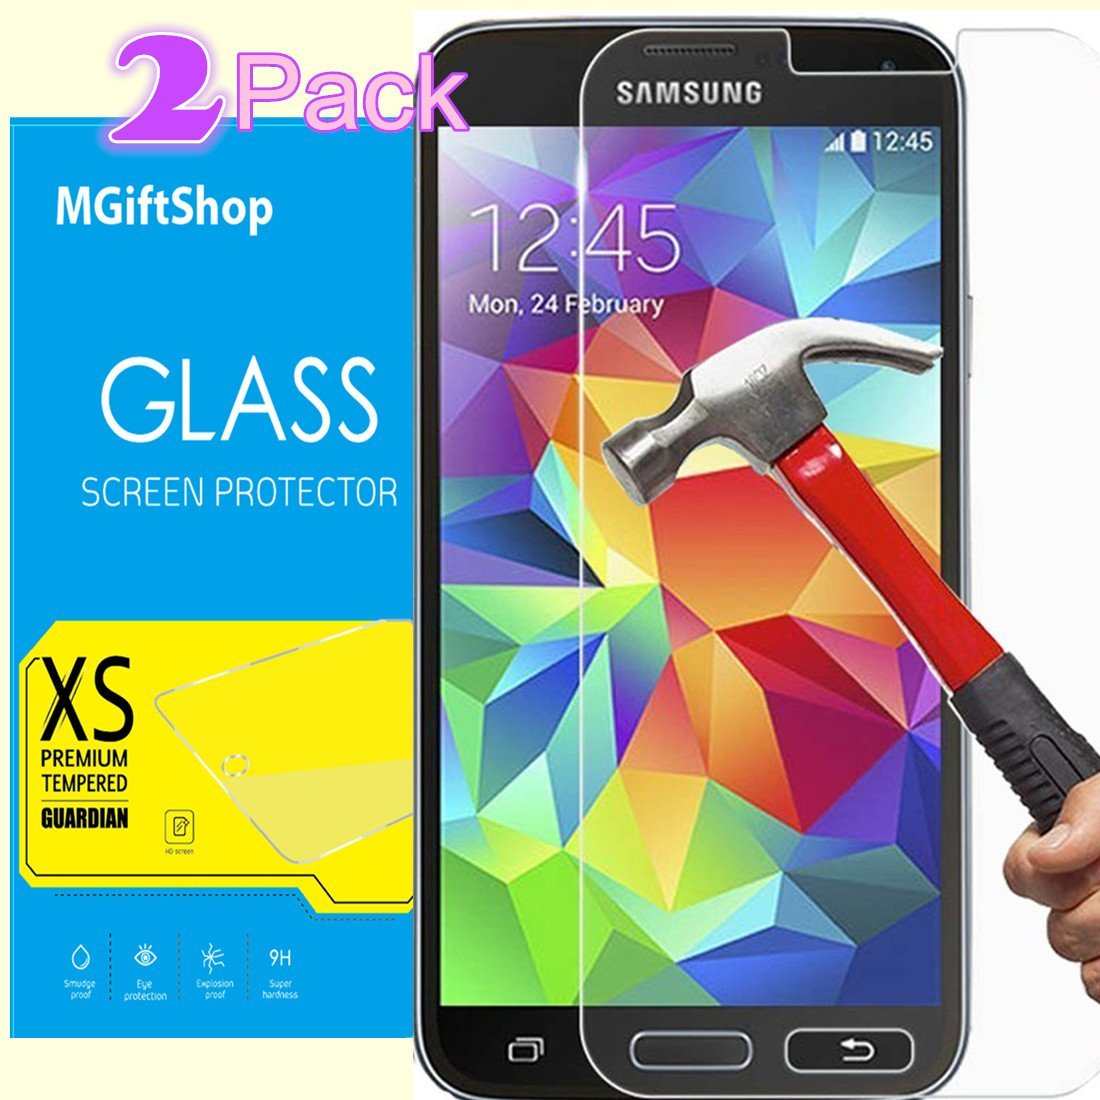 [2 Pack] Samsung Galaxy S7 Screen Protector, Samsung Galaxy S7 Glass Screen Protector, MGIFTSHOP Tempered Glass Screen Protector Samsung Galaxy S7, (2-Pack)